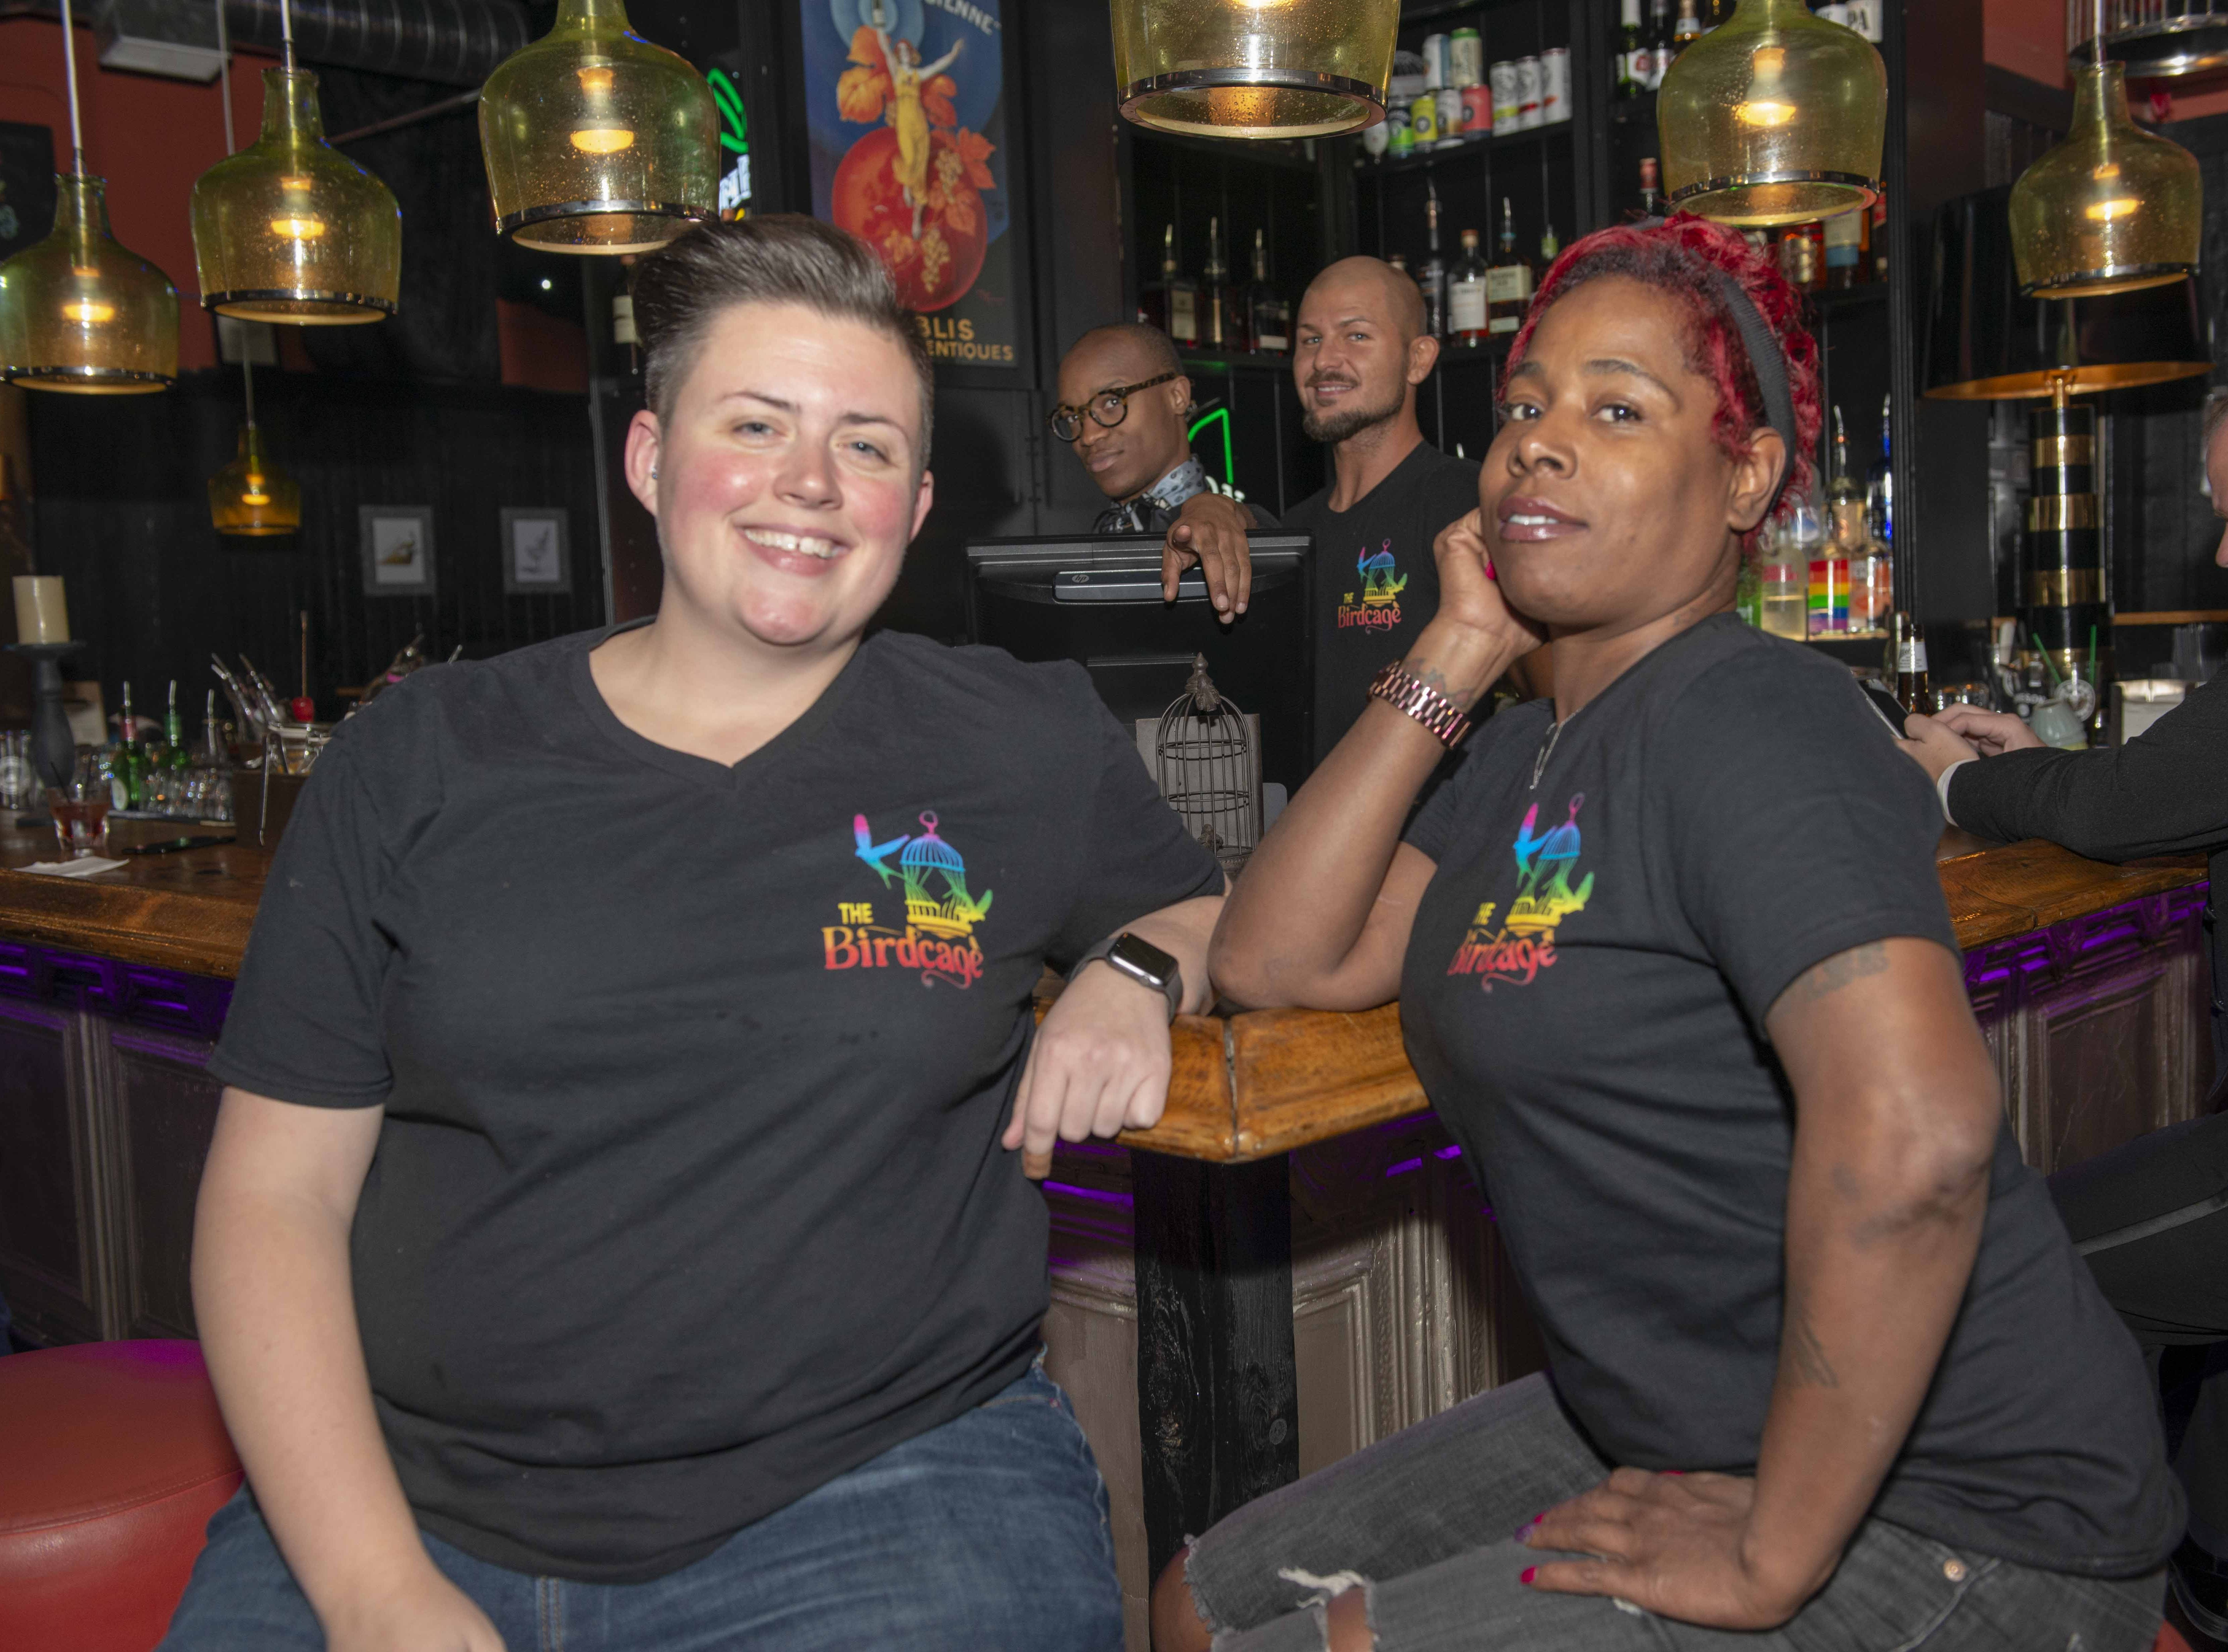 Latoya, who works the door and lives in OTR, and Shelly Buechel, the barback, also from OTR.